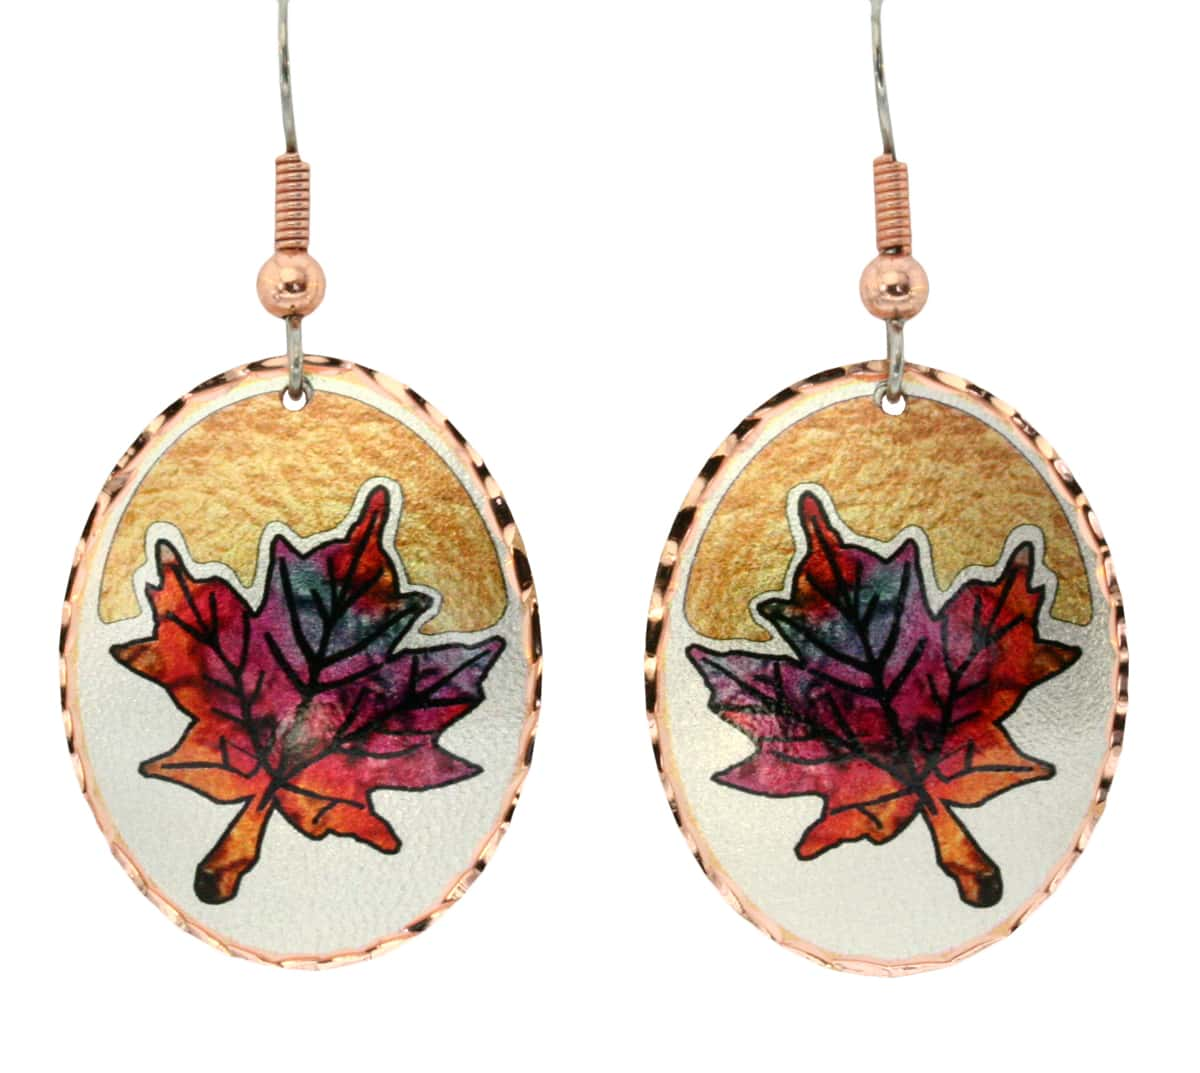 Gorgeous maple leaf earrings created in flame painting colors with silver and gold color background